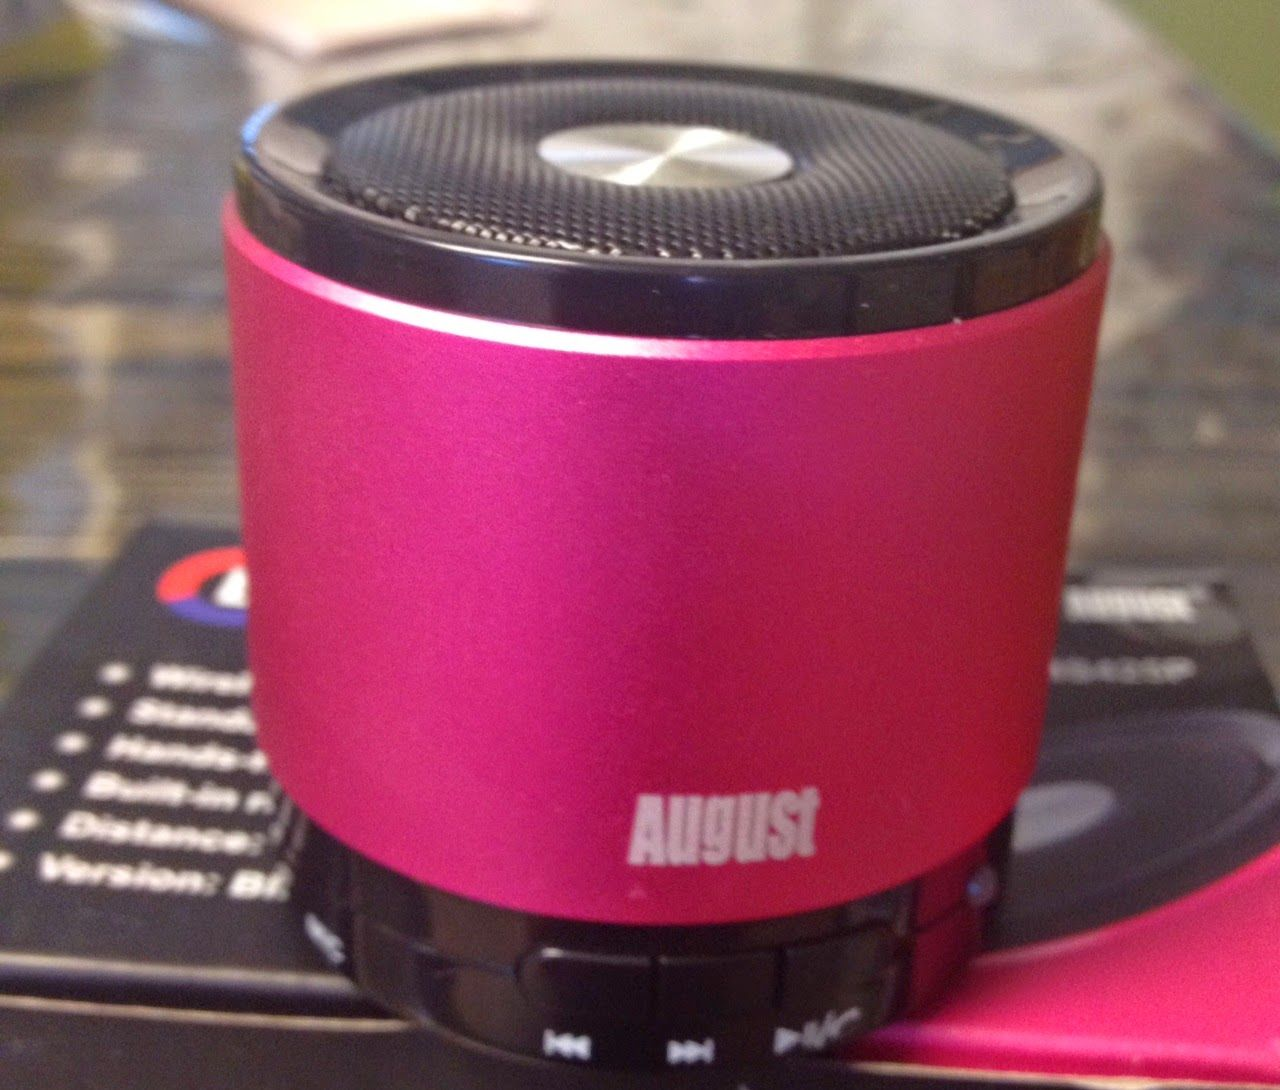 Enter to win an august blue tooth speaker 3 winners